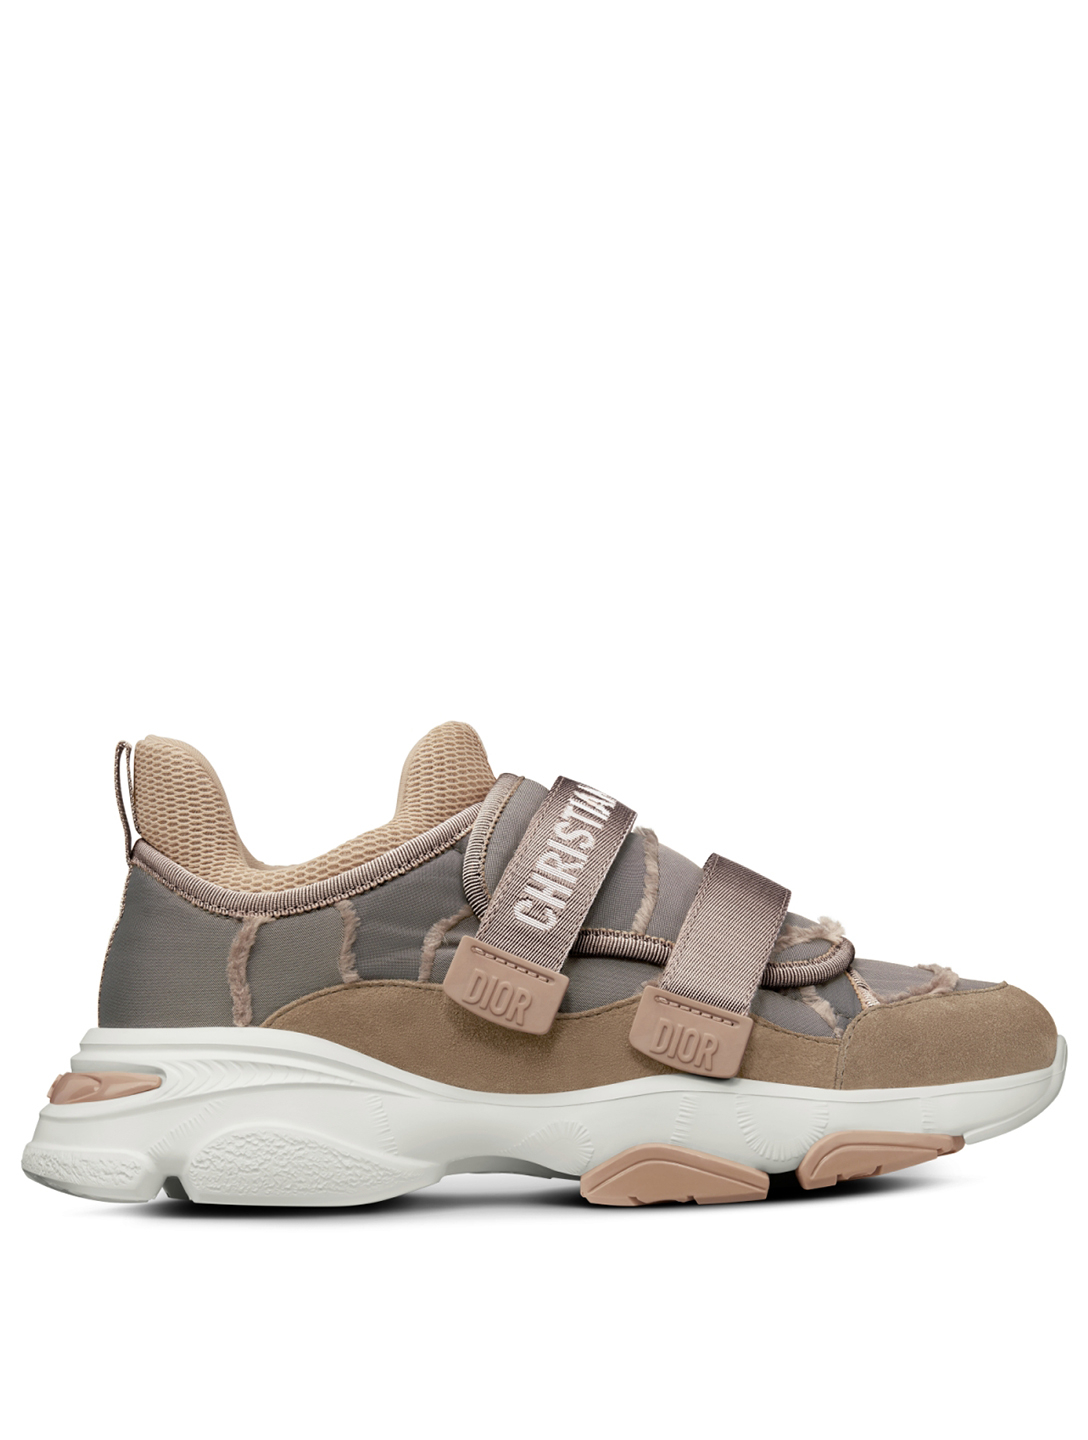 DIOR D-Wander Camouflage Nylon Sneakers Women's Neutral